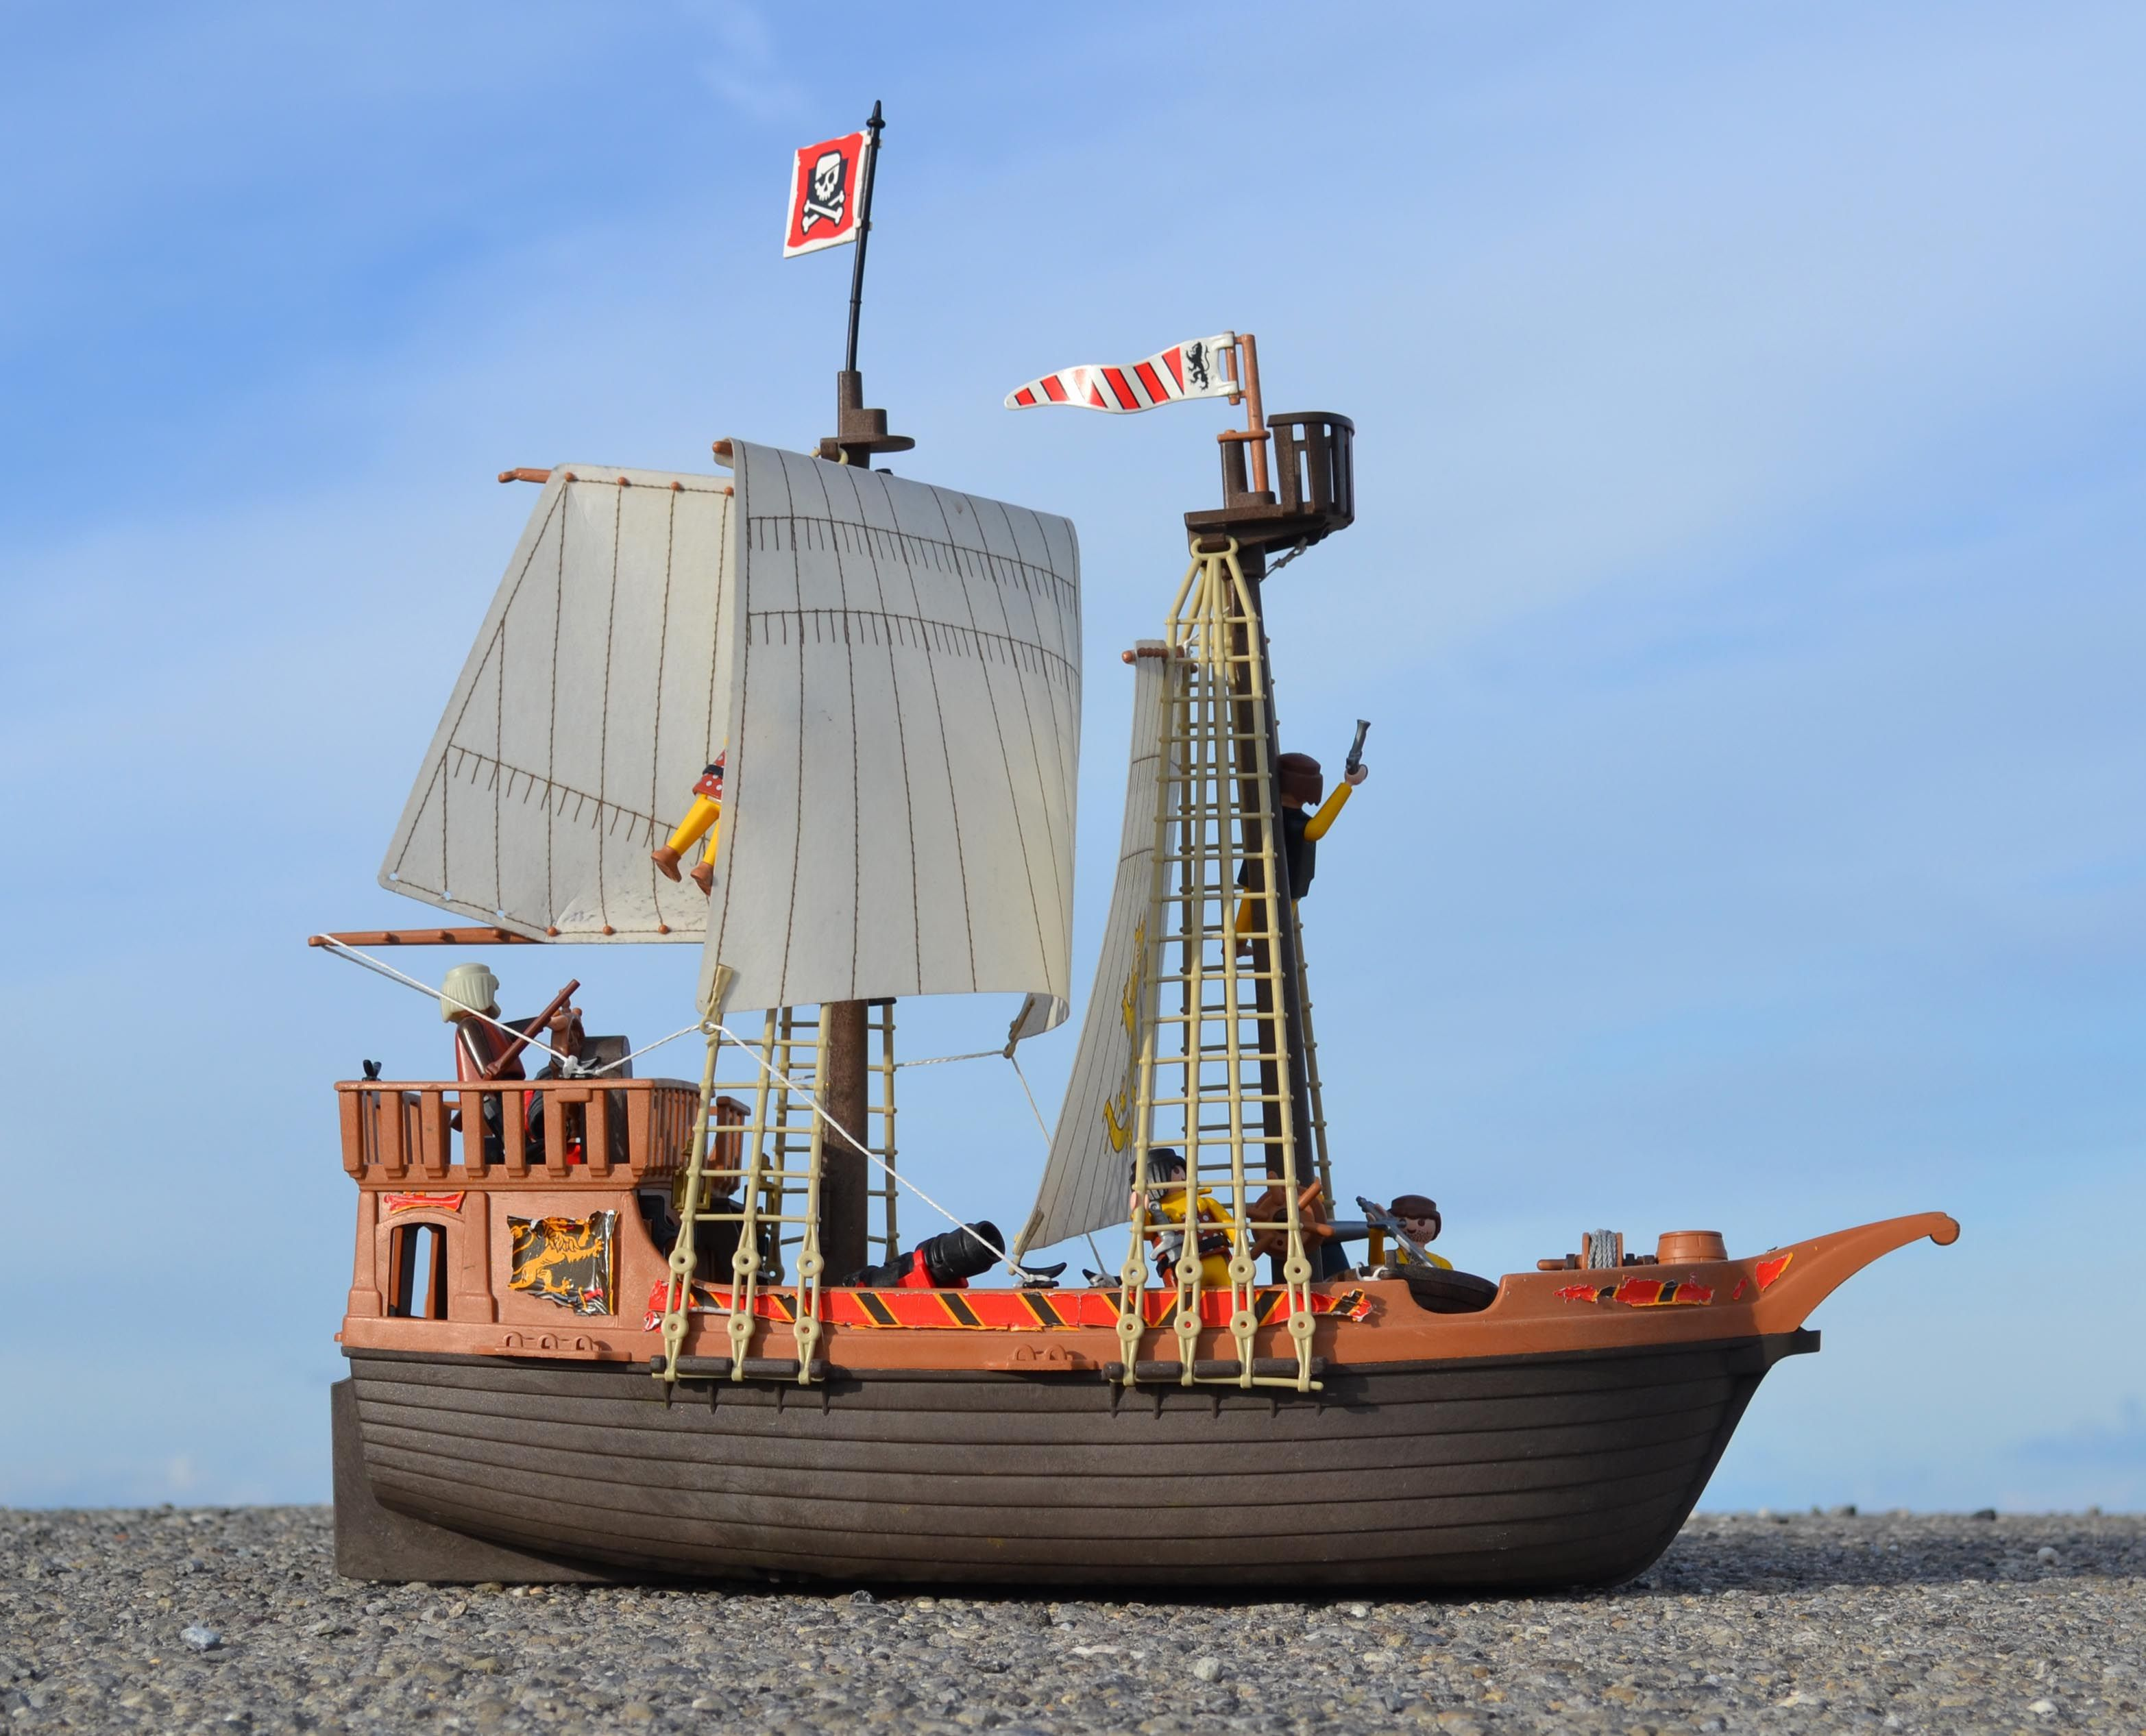 bateau pirates playmobil lincoln 39 s collectable 39 s pinterest mobilier design. Black Bedroom Furniture Sets. Home Design Ideas